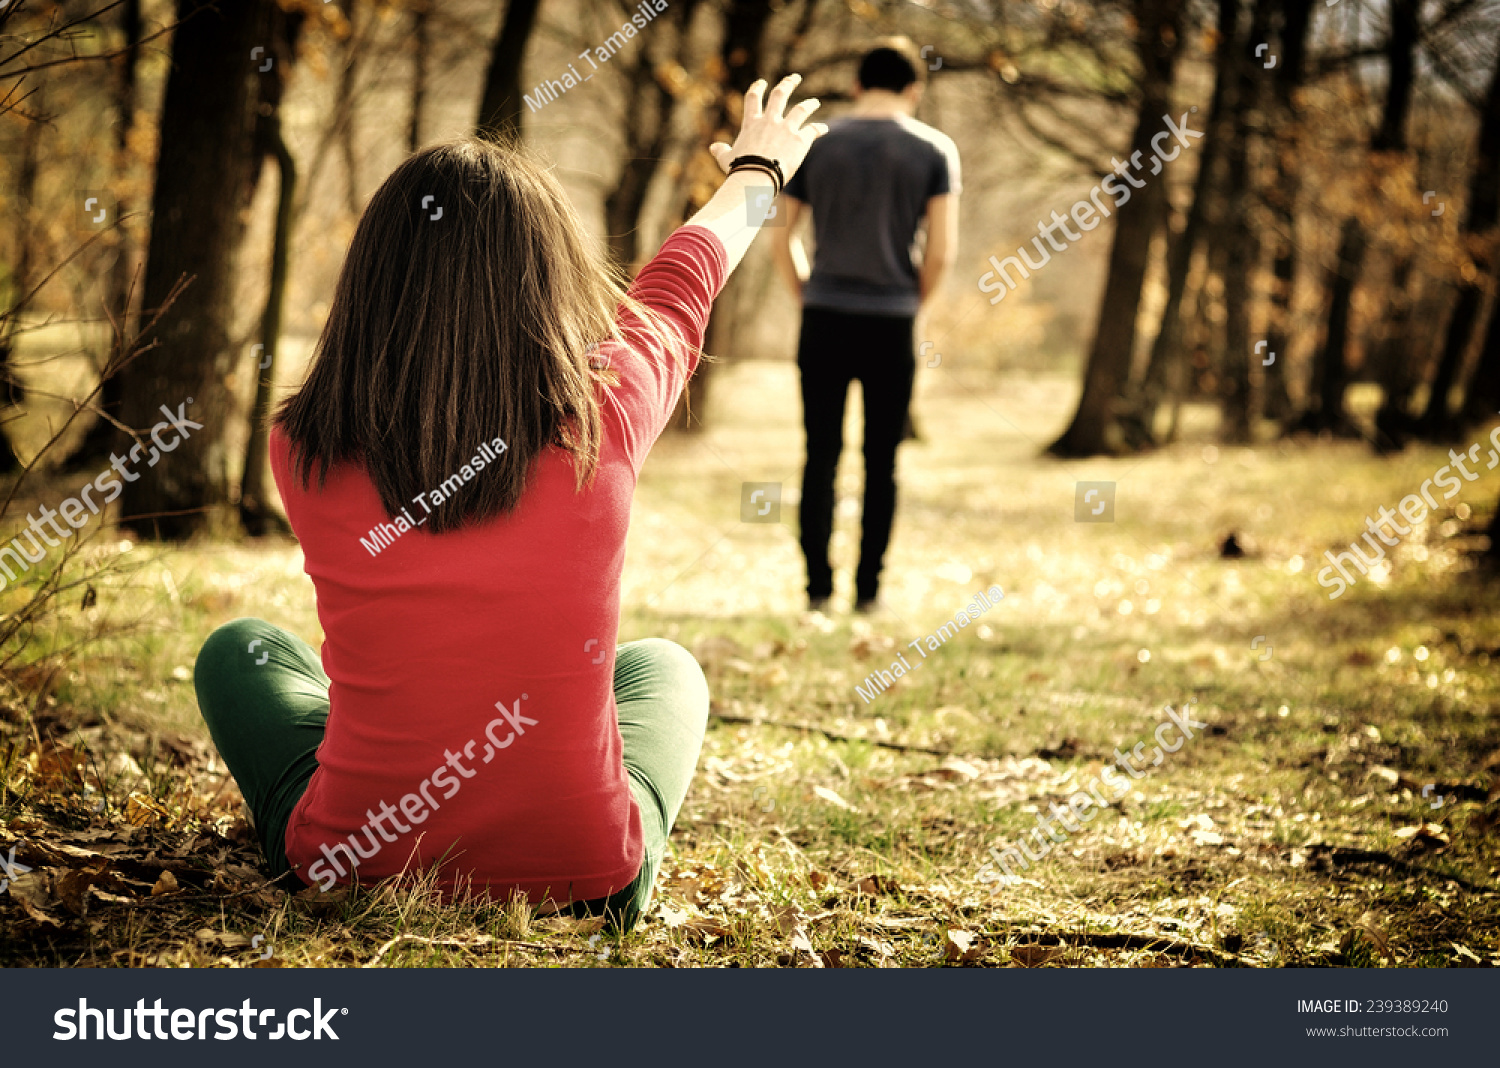 Love Breakup Wallpaper For Boy : Young couple Breaking Up. Girl Shouting Out For Boy Stock Photo 239389240 : Shutterstock